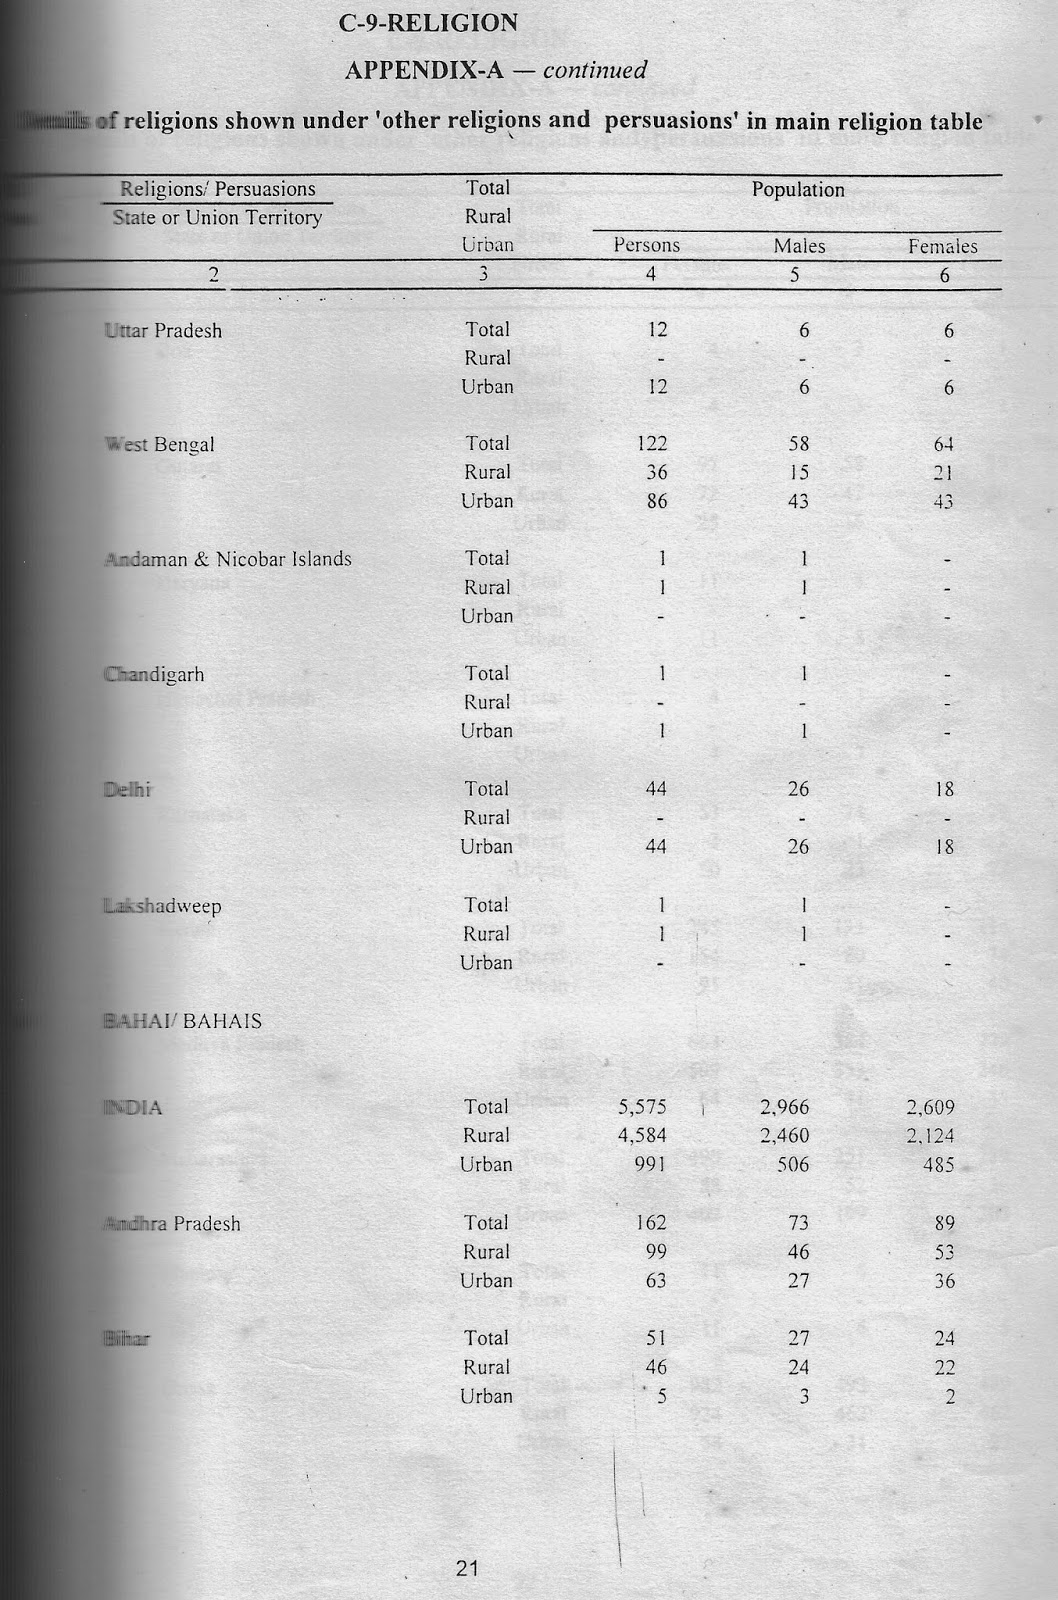 Bahais in India - 1991 Census